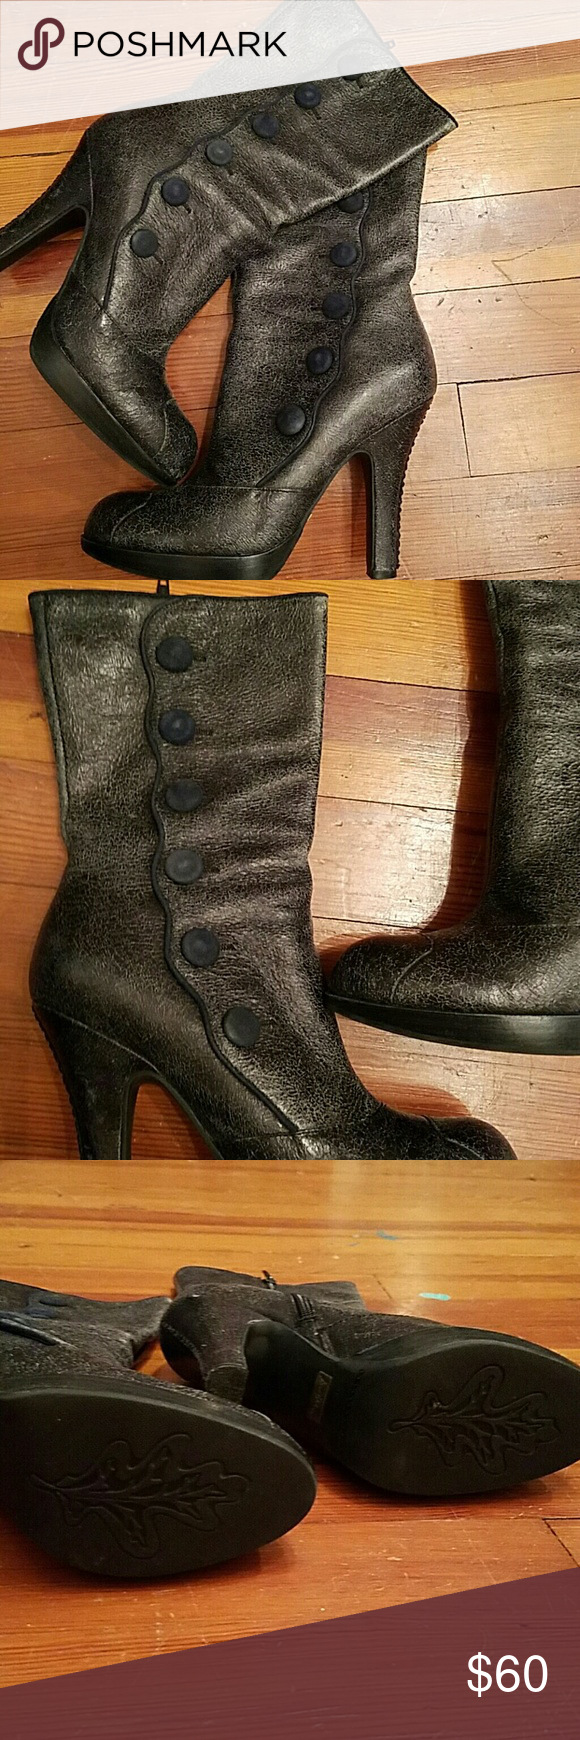 """Sam Edelman """"Patrella"""" Black Shattered Boots These are gorgeous boots with velor buttons up the side on a scalloped edge. Finished off with a shattered/crackle/distressed look. Perfect with a white blouse! Sam Edelman Shoes Heeled Boots"""